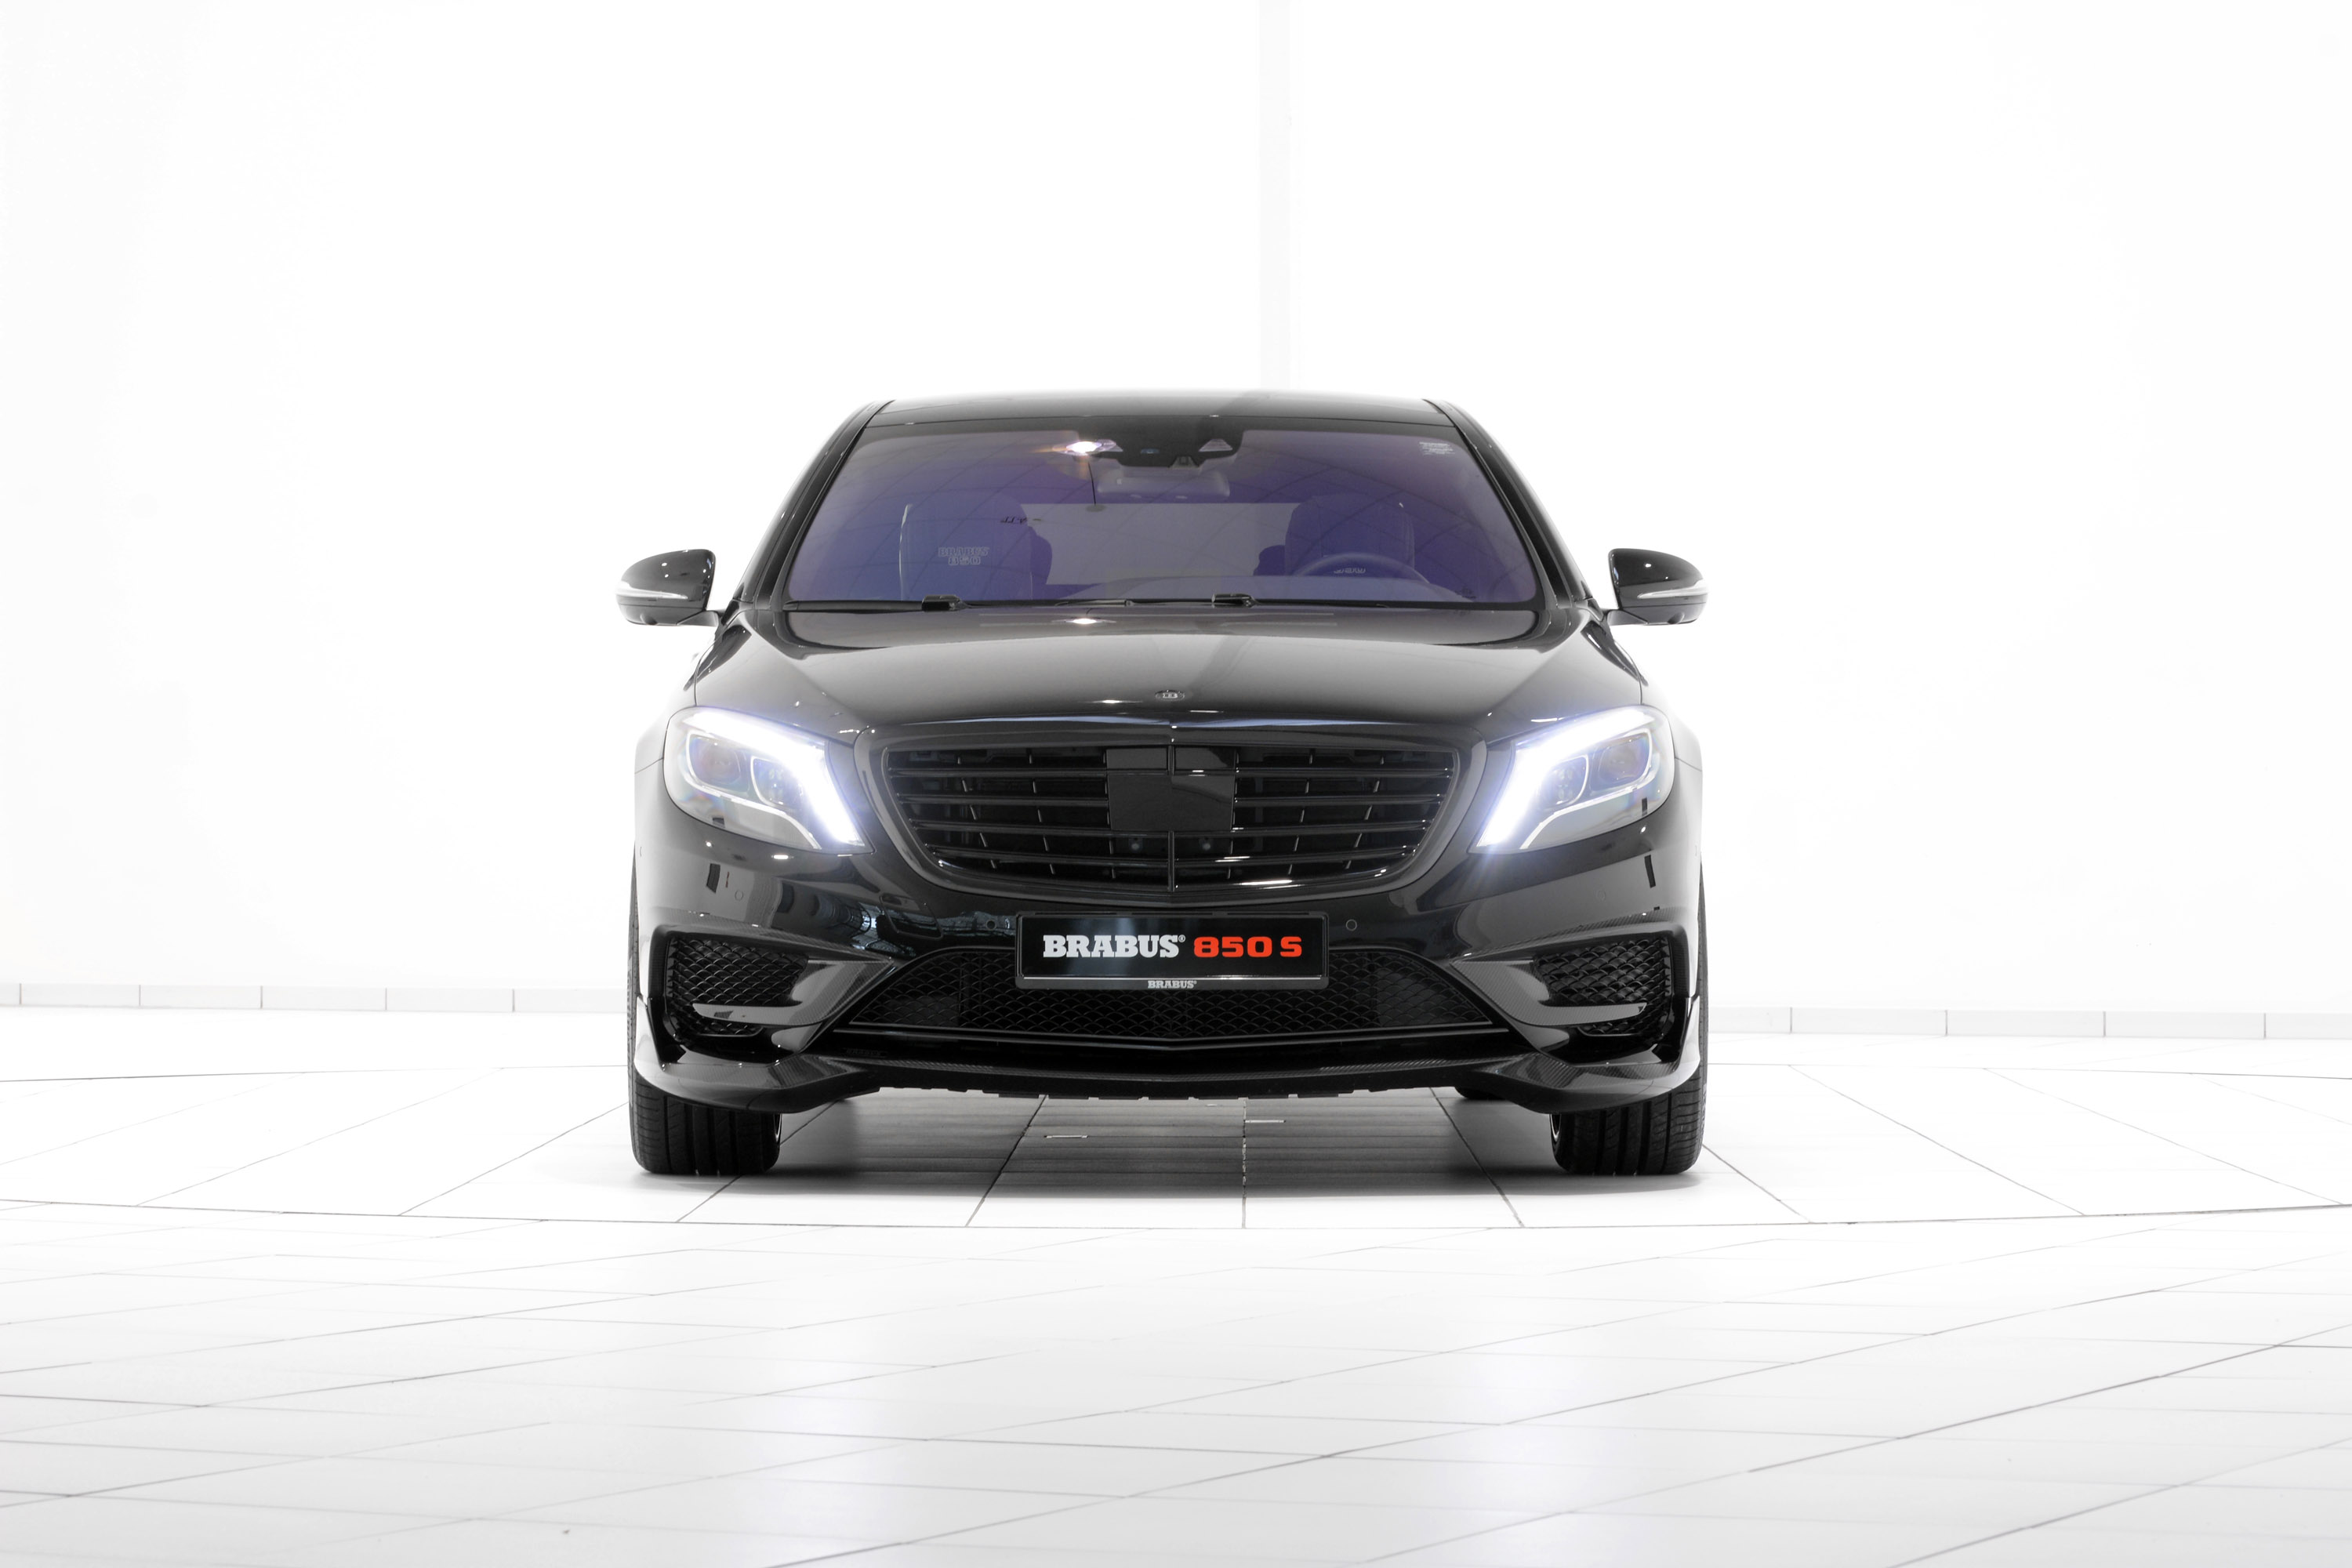 Brabus 850 s based on 2014 mercedes benz s 63 amg for Mercedes benz s63 2014 price